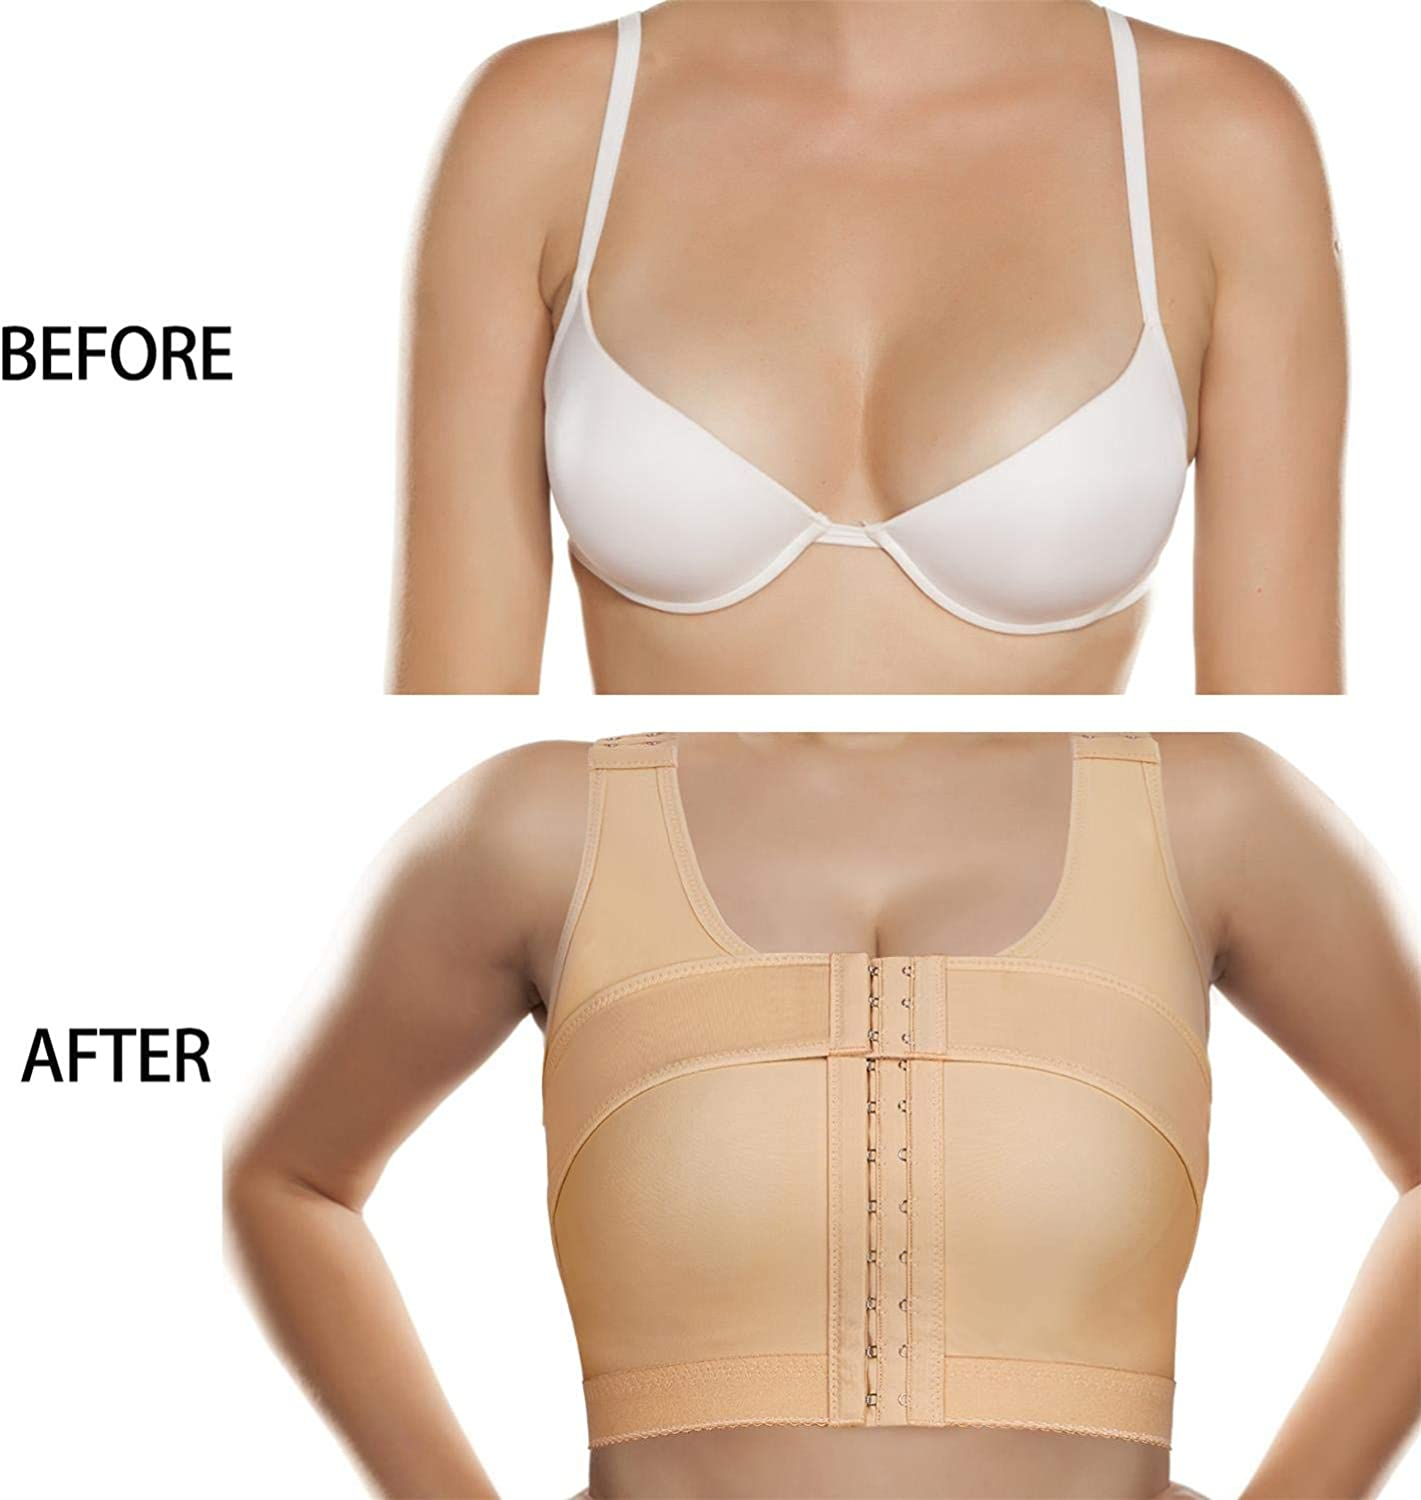 BRABIC Women's Front Closure Bra Post-Surgery Posture Corrector Shaper Tops with Breast Support Band: Clothing